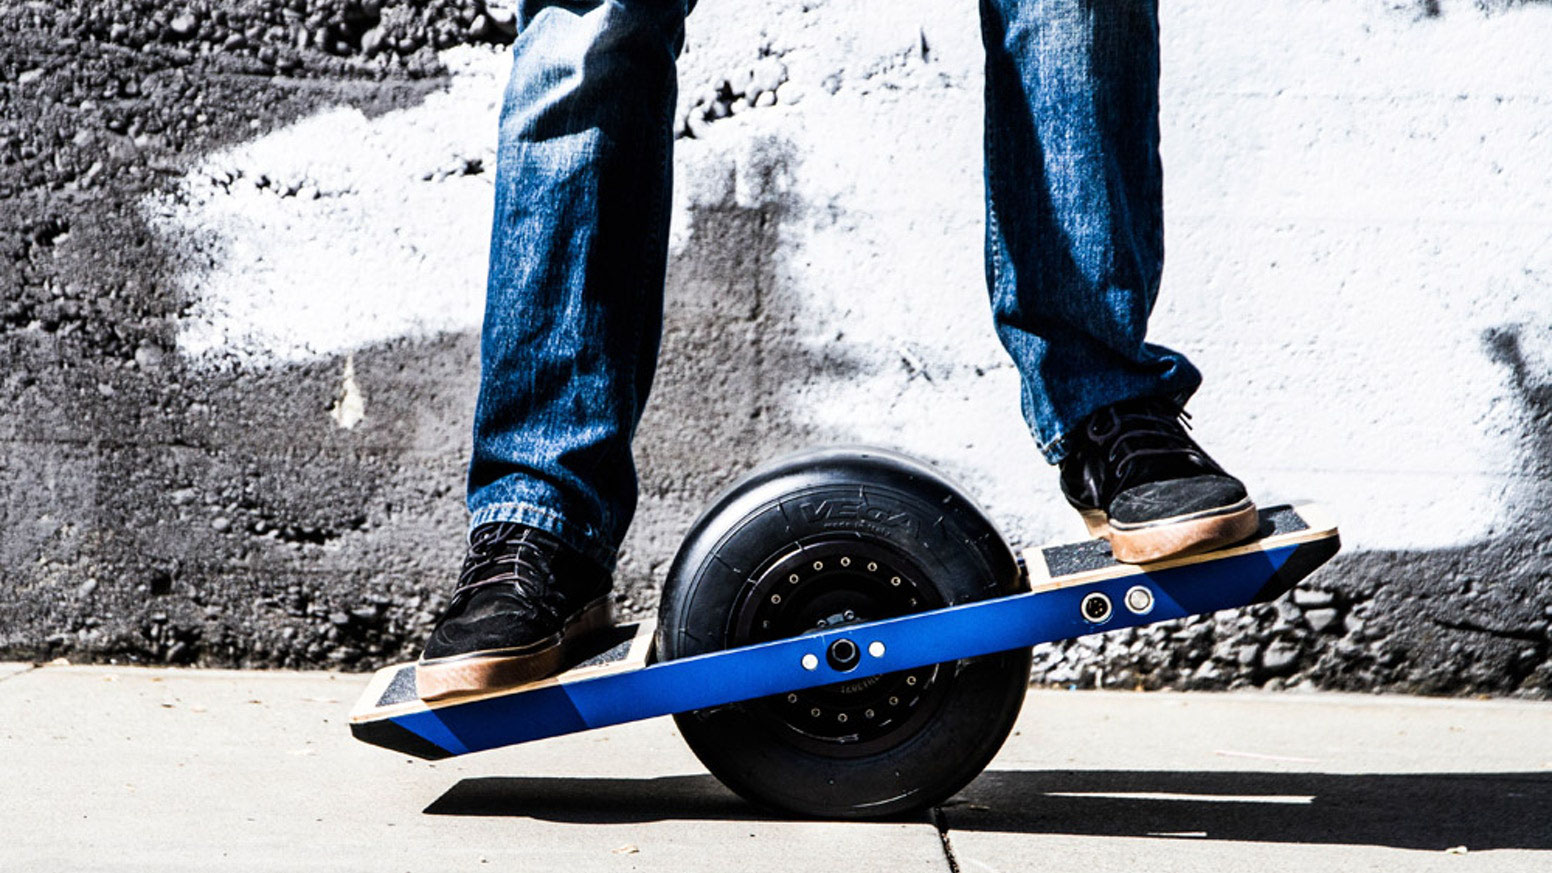 Onewheel User Guide Pdf